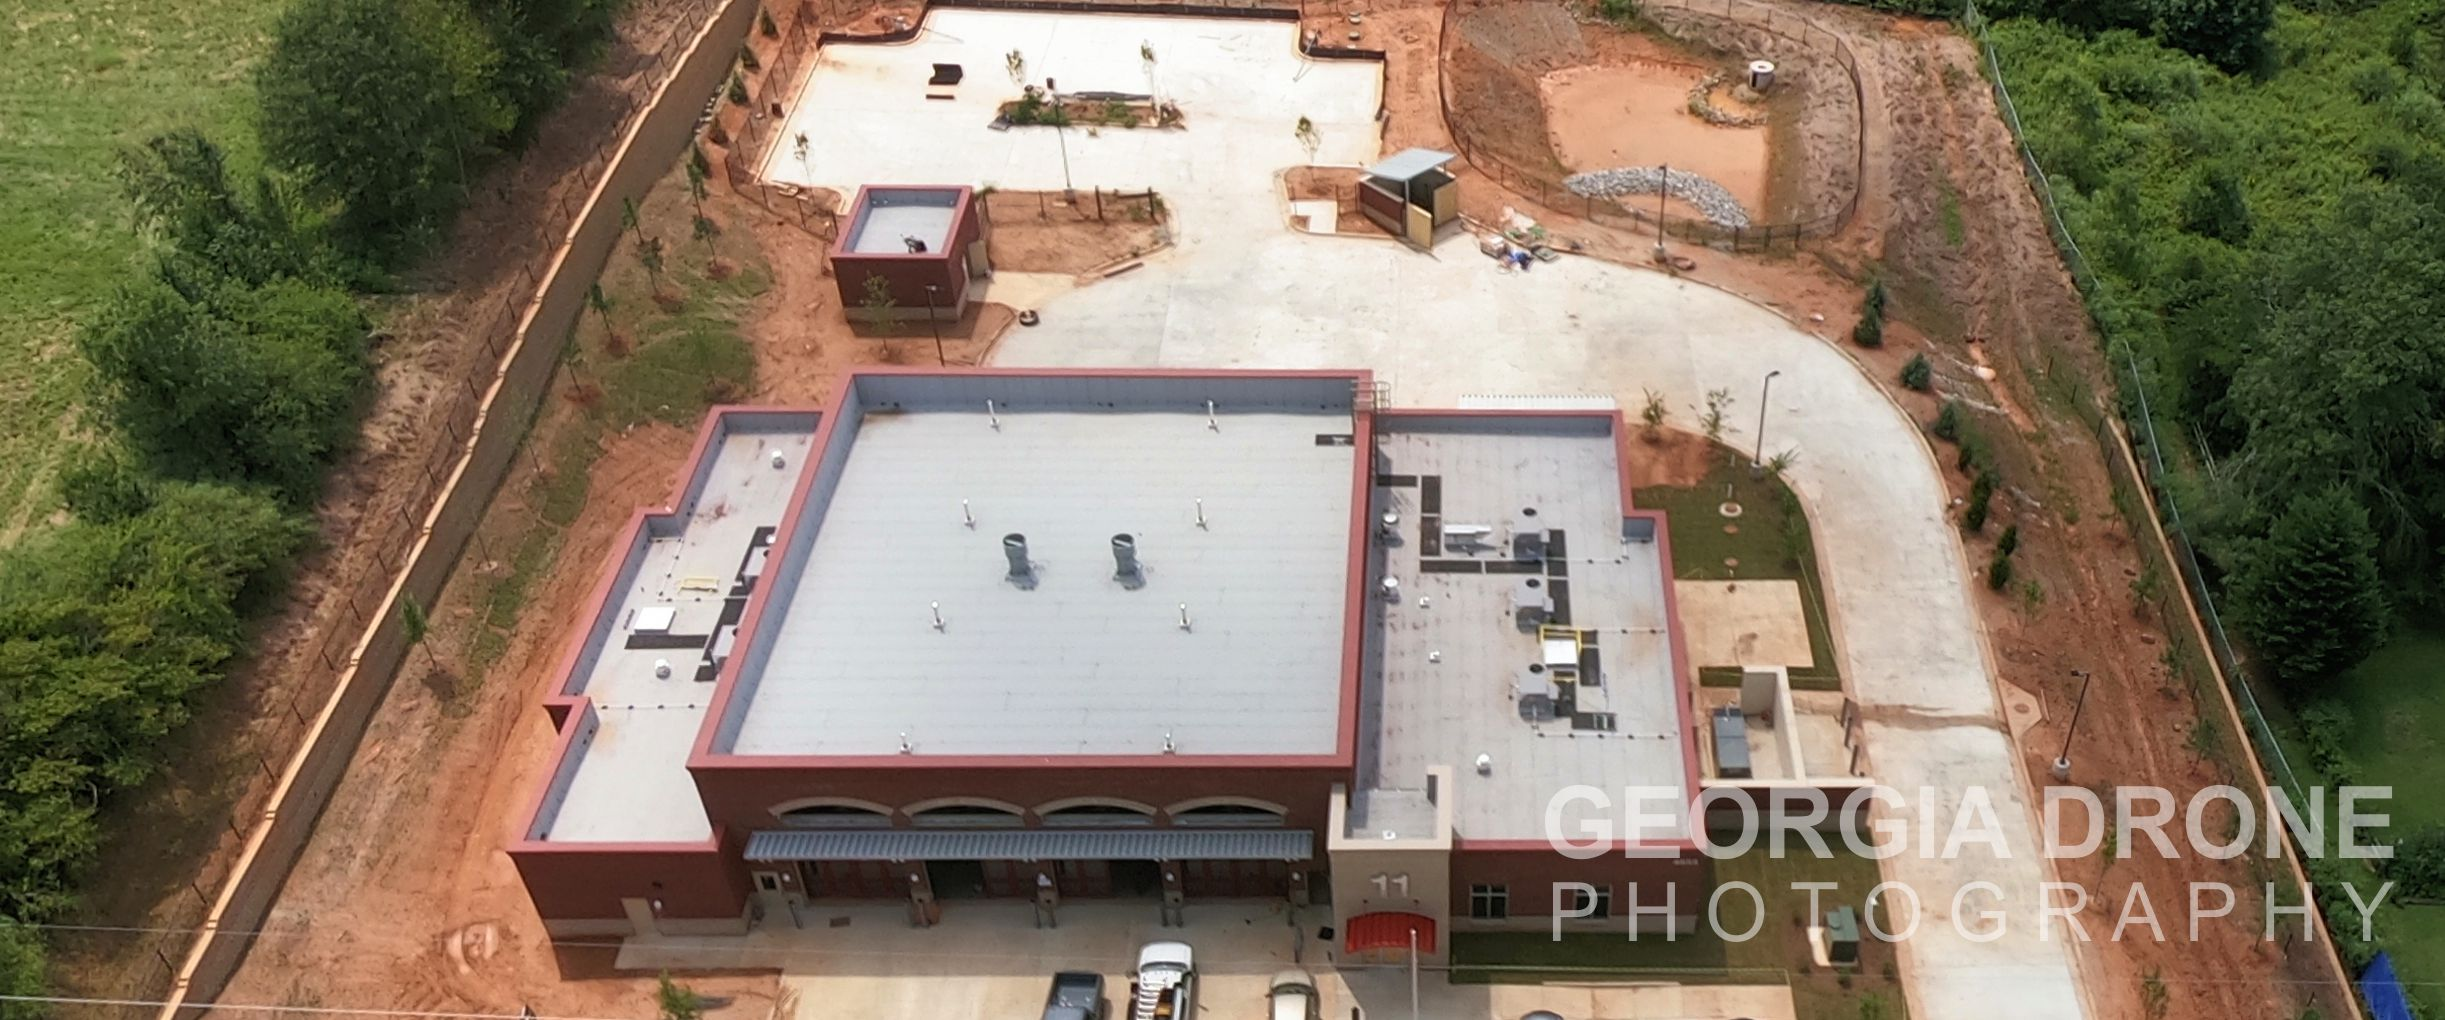 Drone photography of construction of the Forsyth County fire station number 11 on Pittman Road